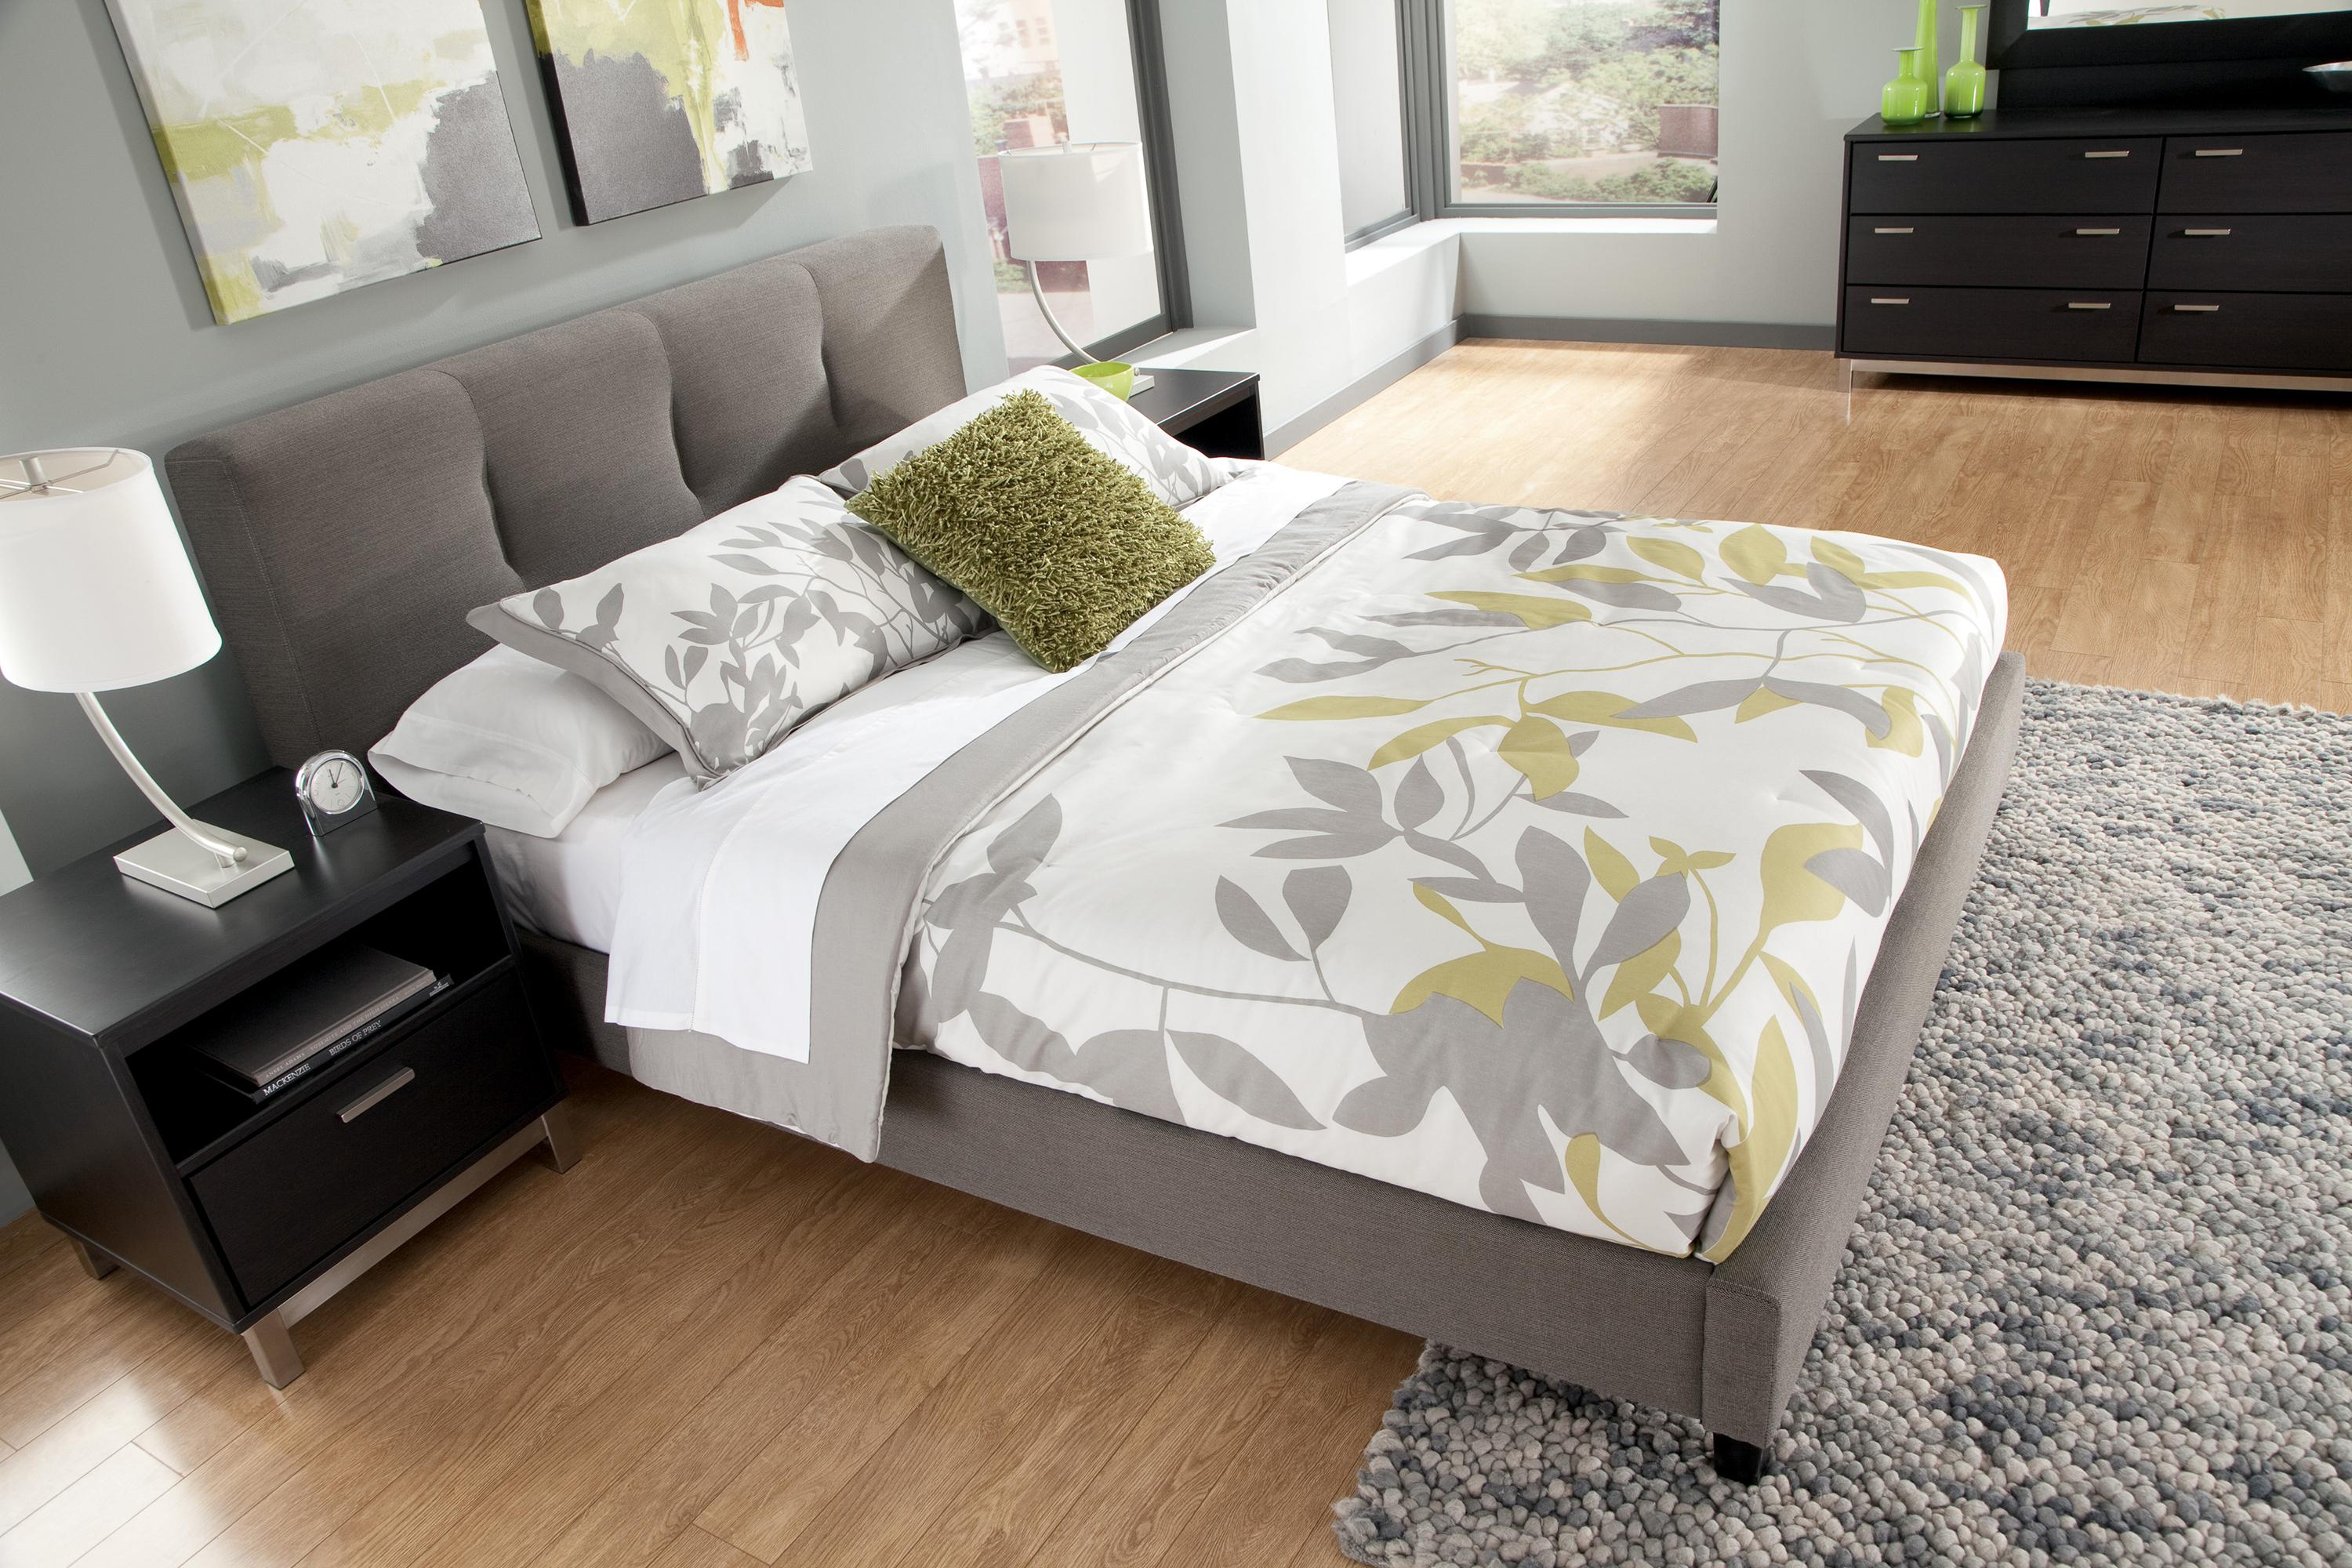 King Upholstered Platform Bed With Channel Tufted